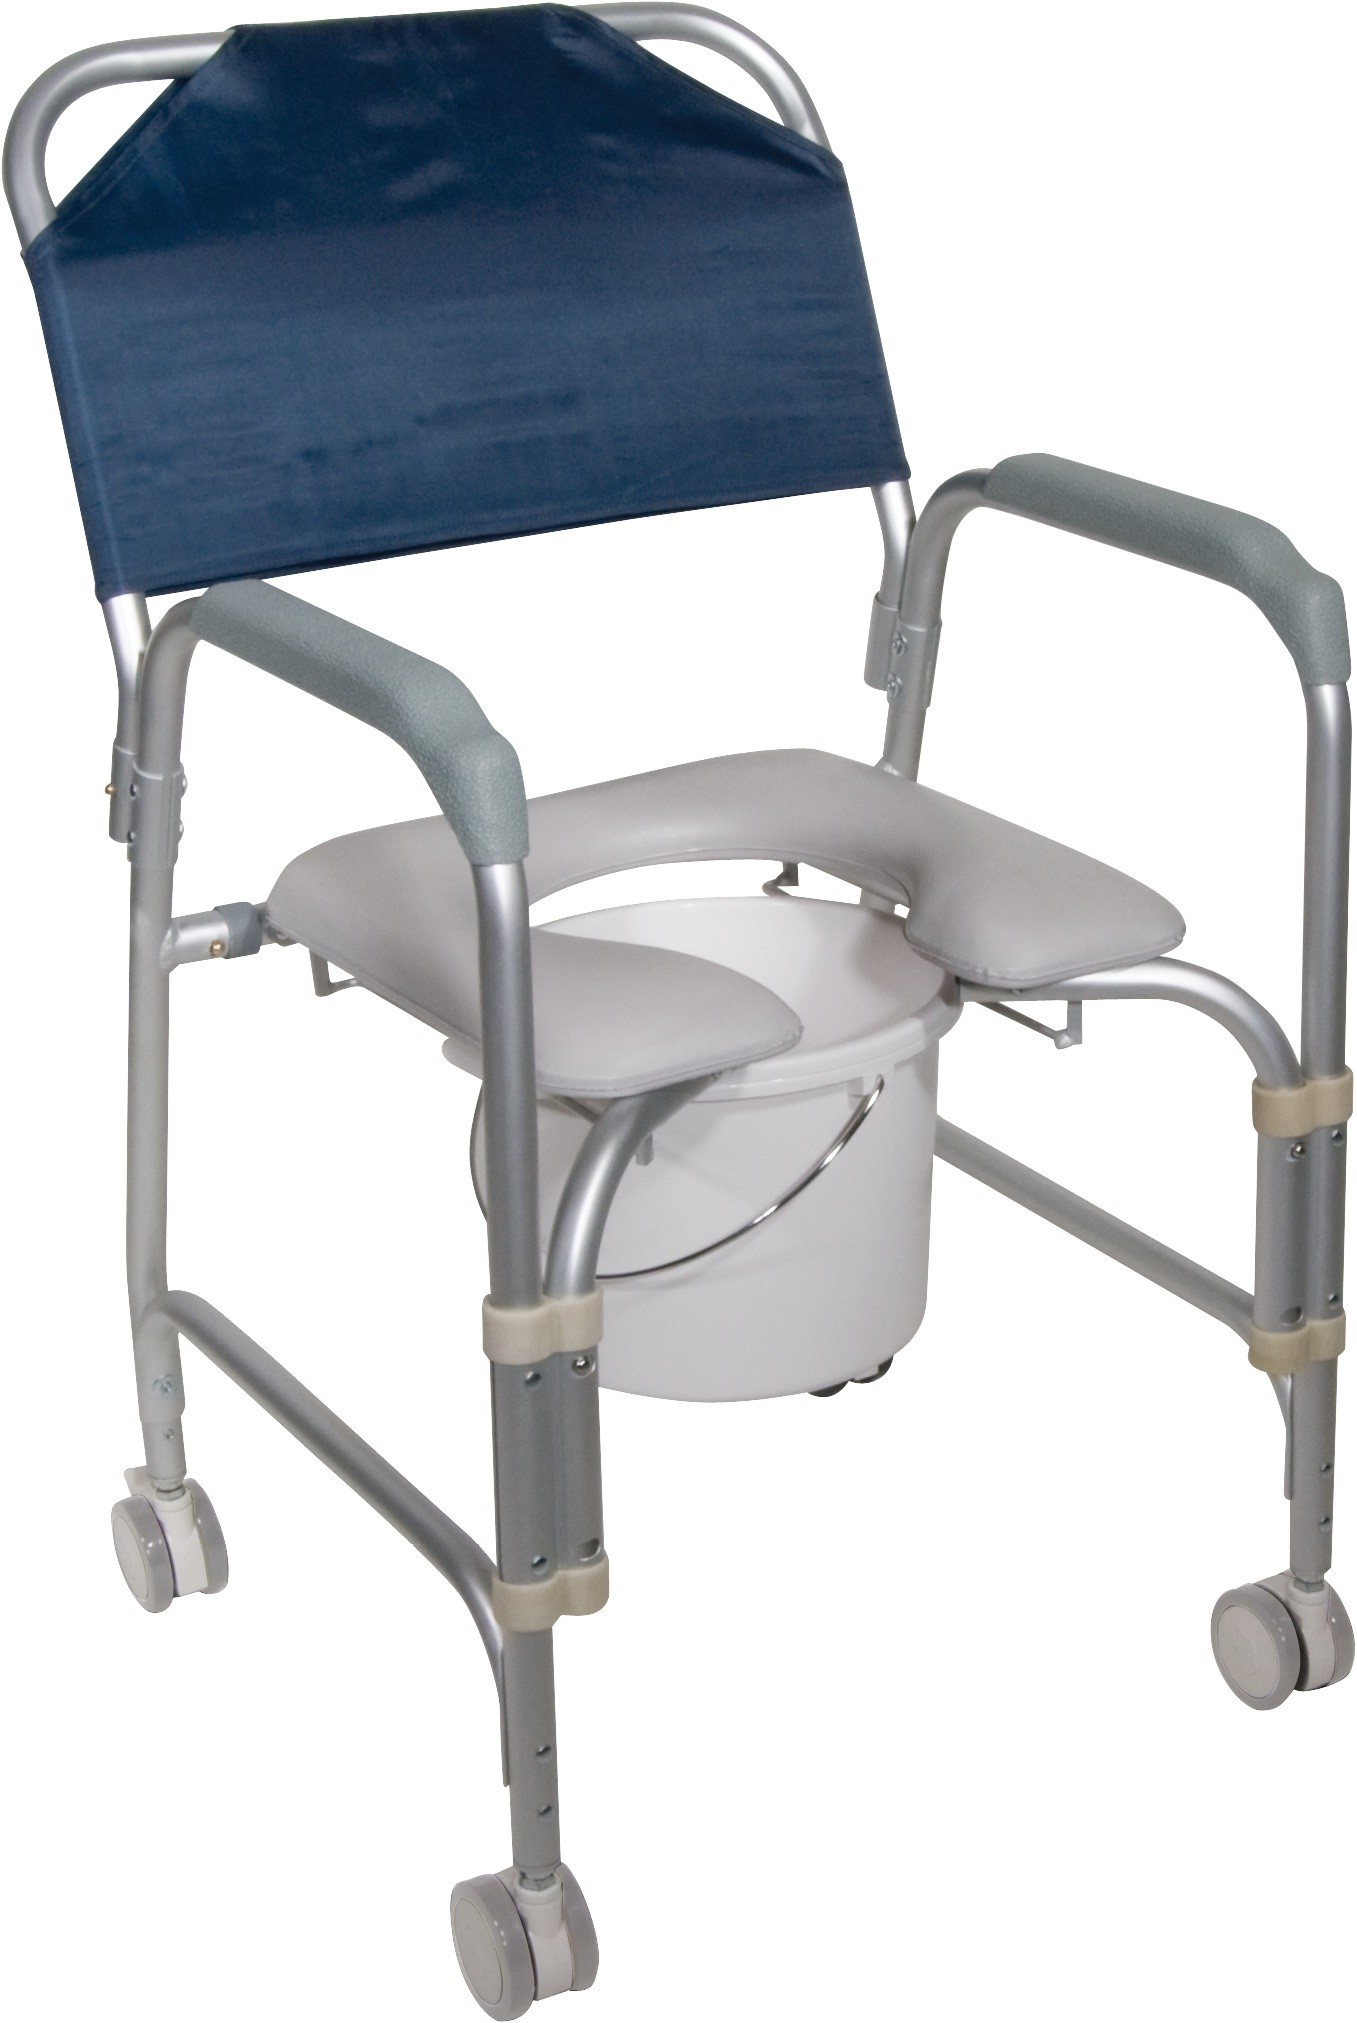 Alluminum Shower Chair & Commode w/ Casters Enlarged